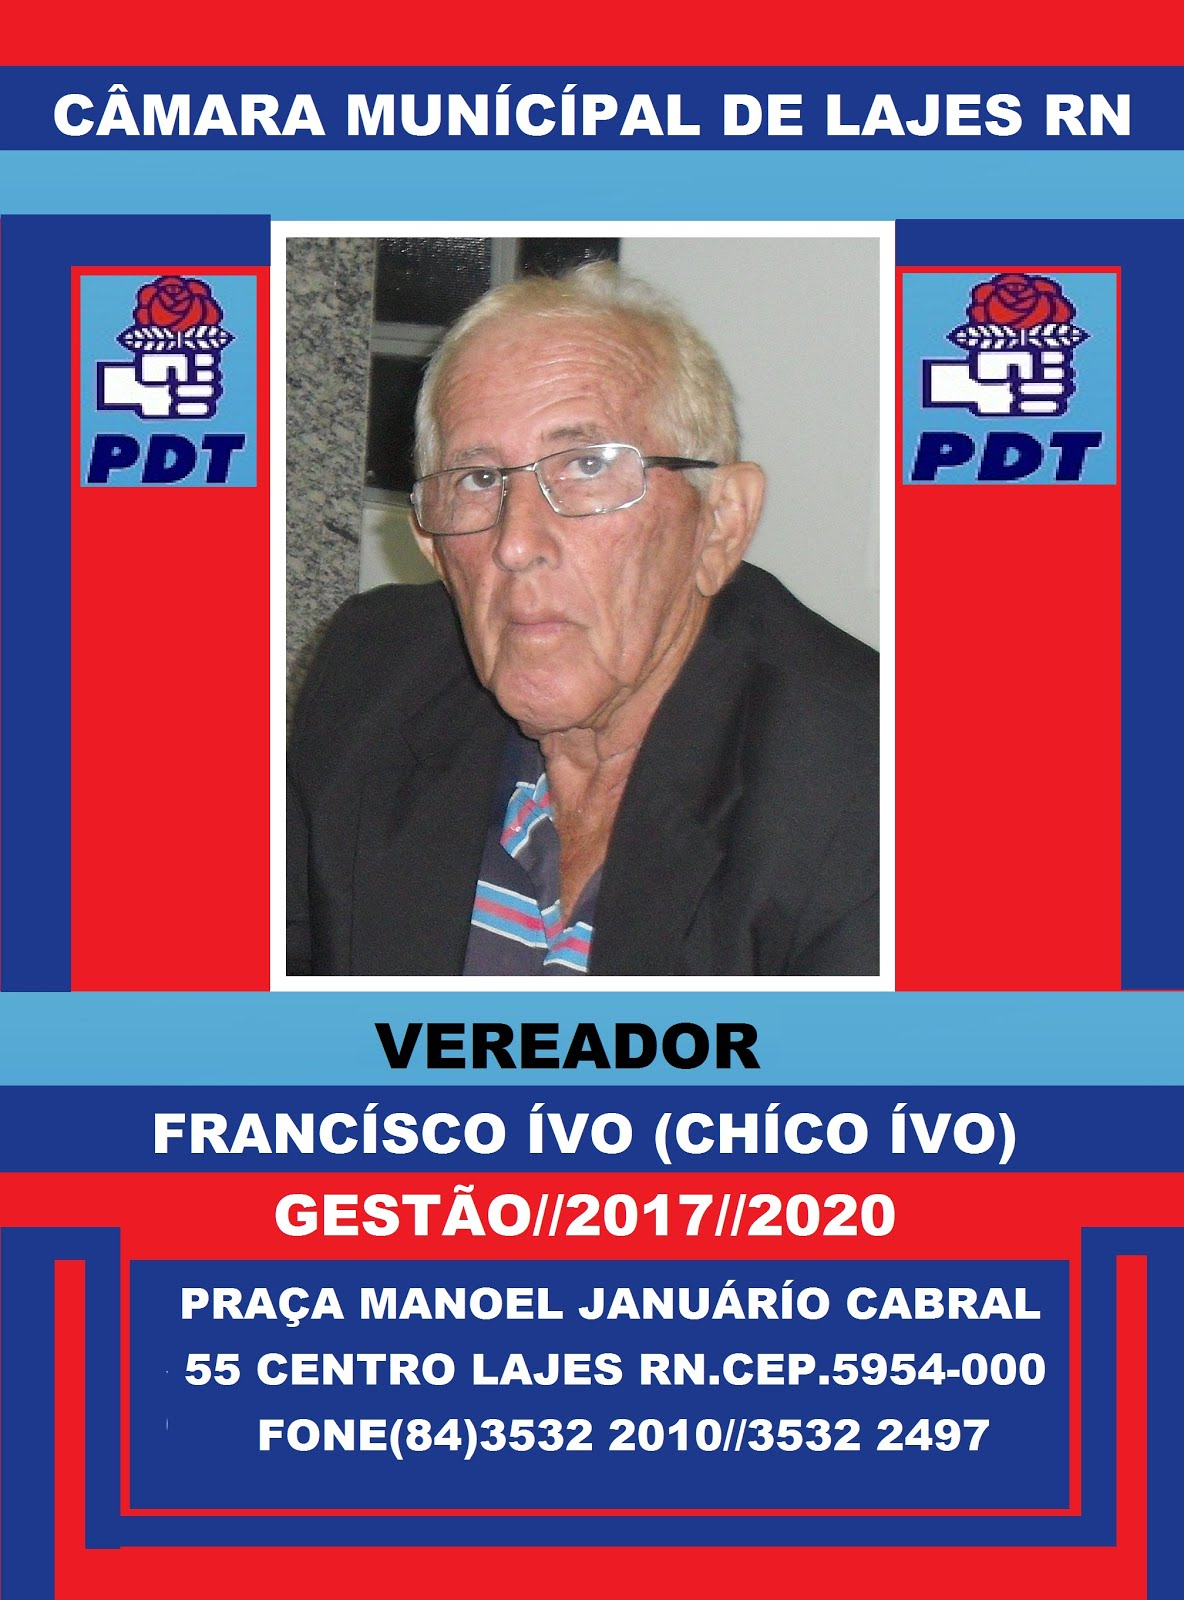 VEREADOR CHÍCO IVO GESTÃO 2017 2020 LAJES RN